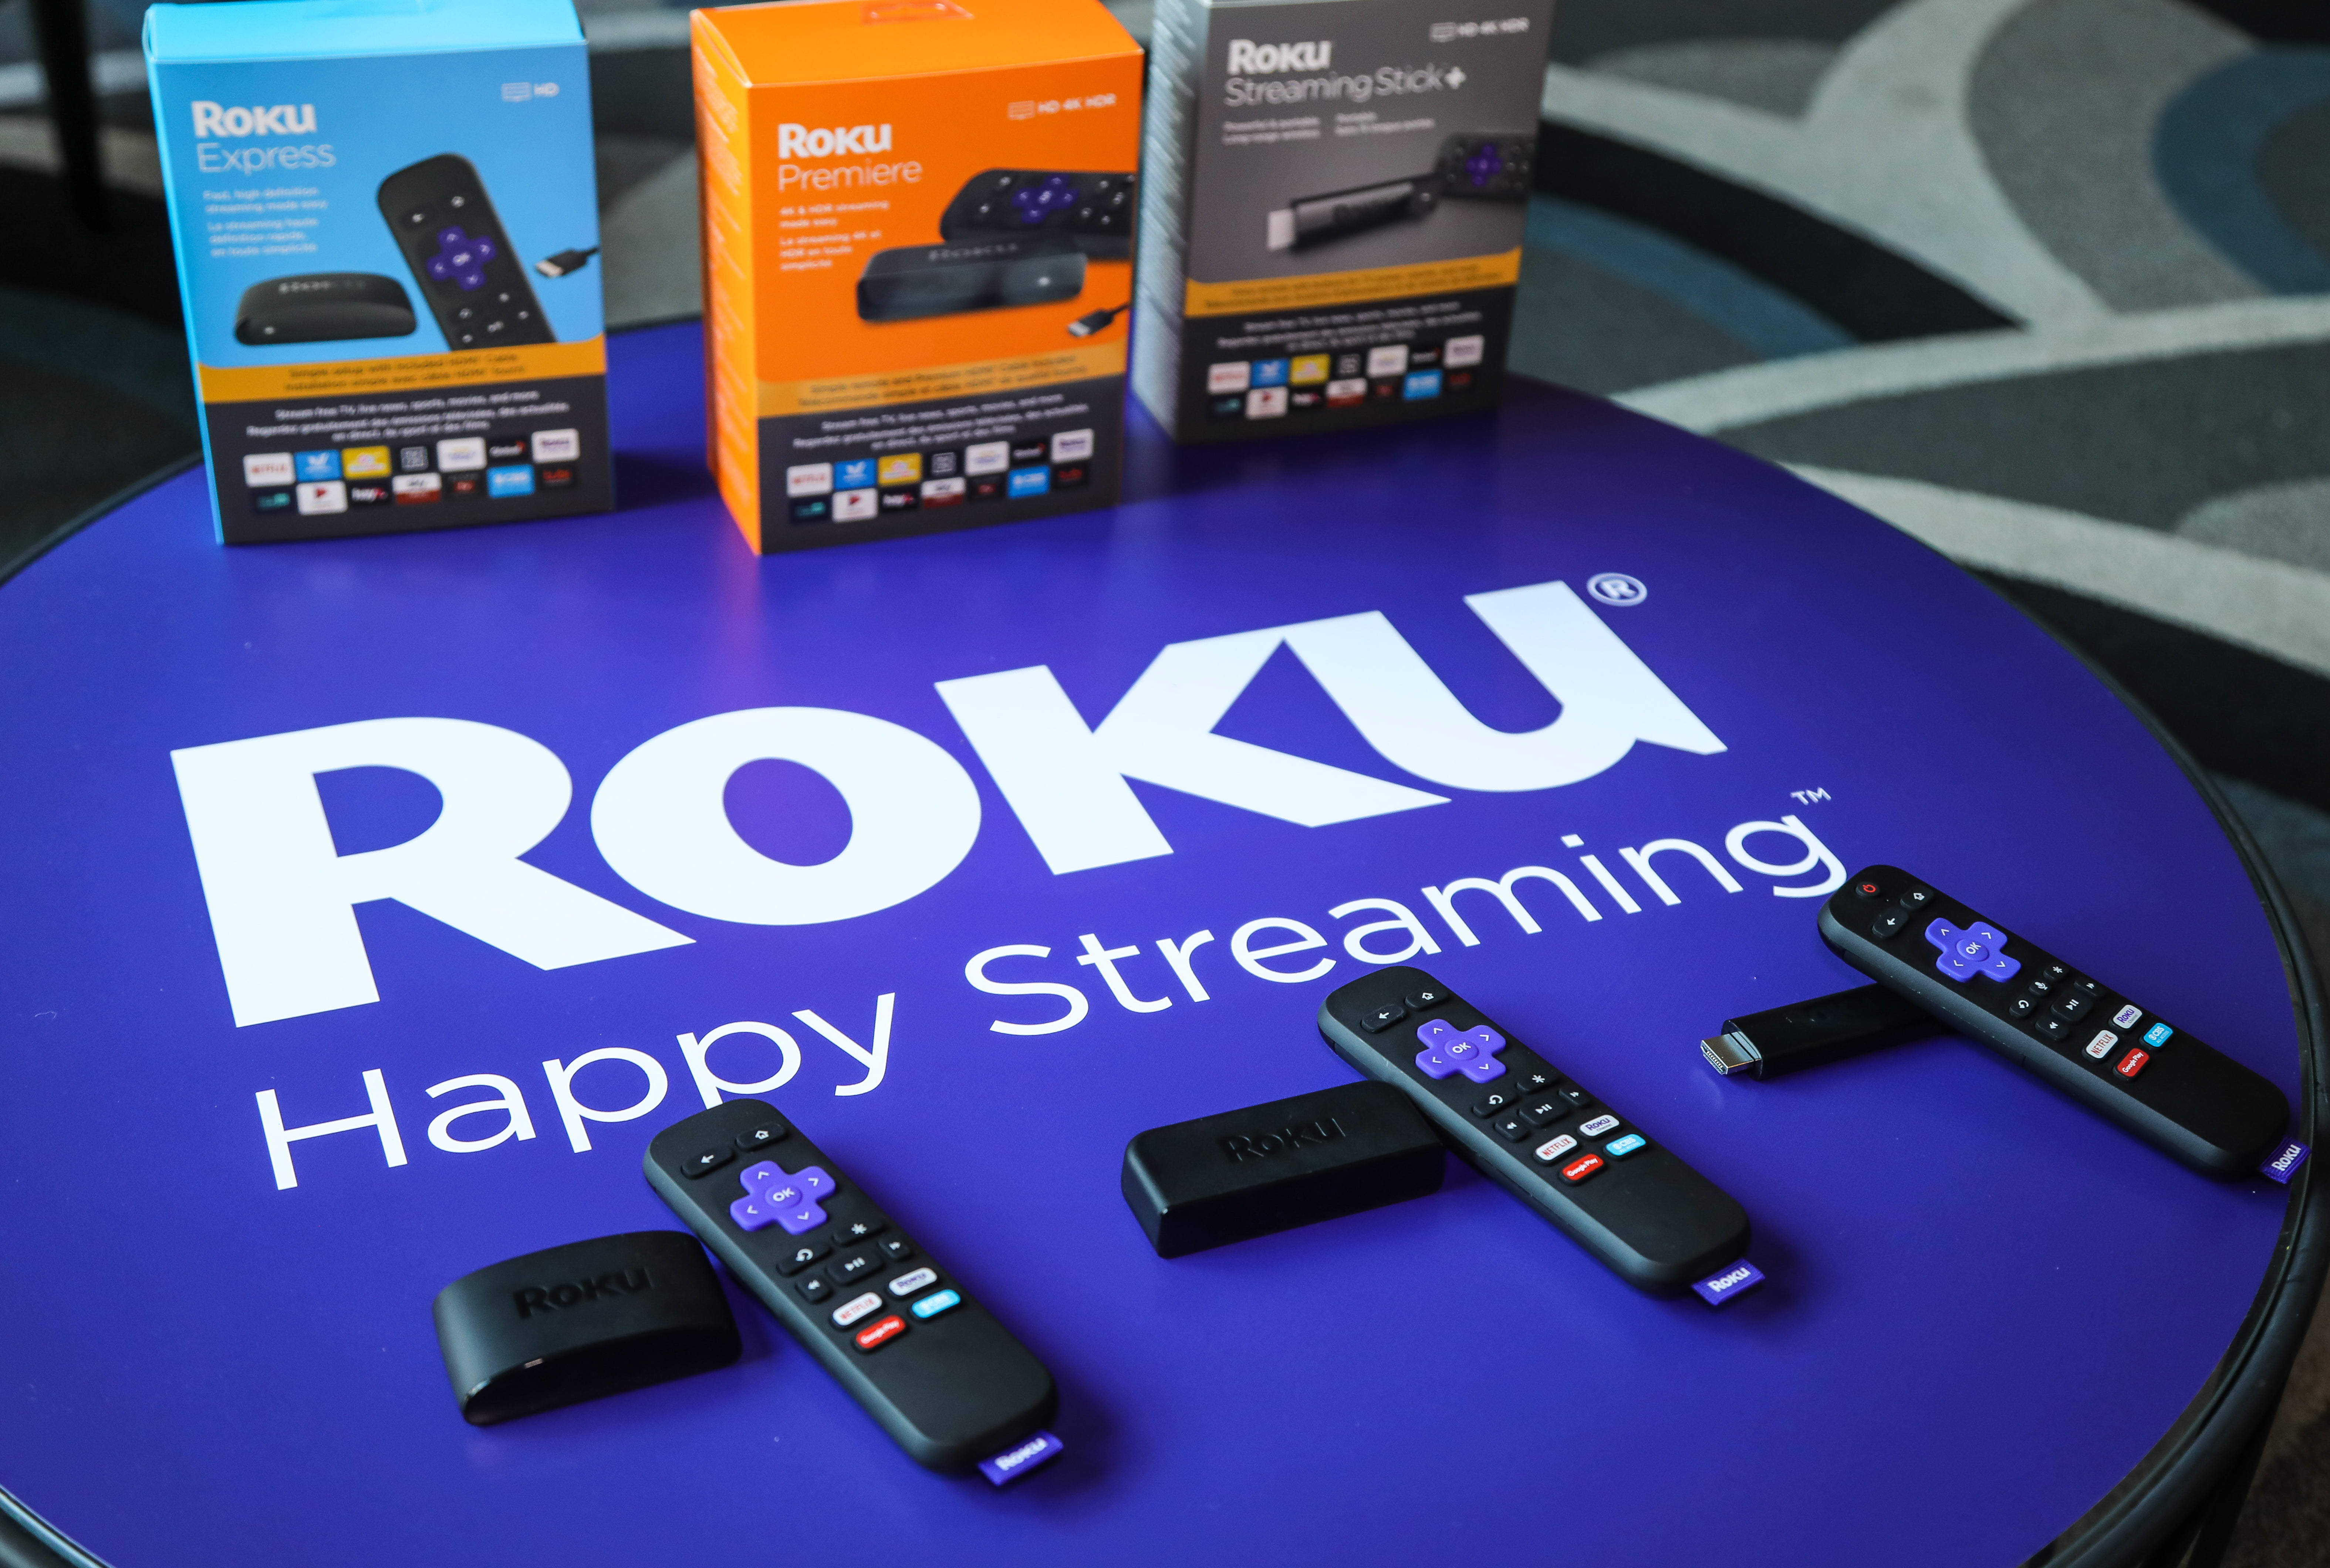 Roku streaming devices